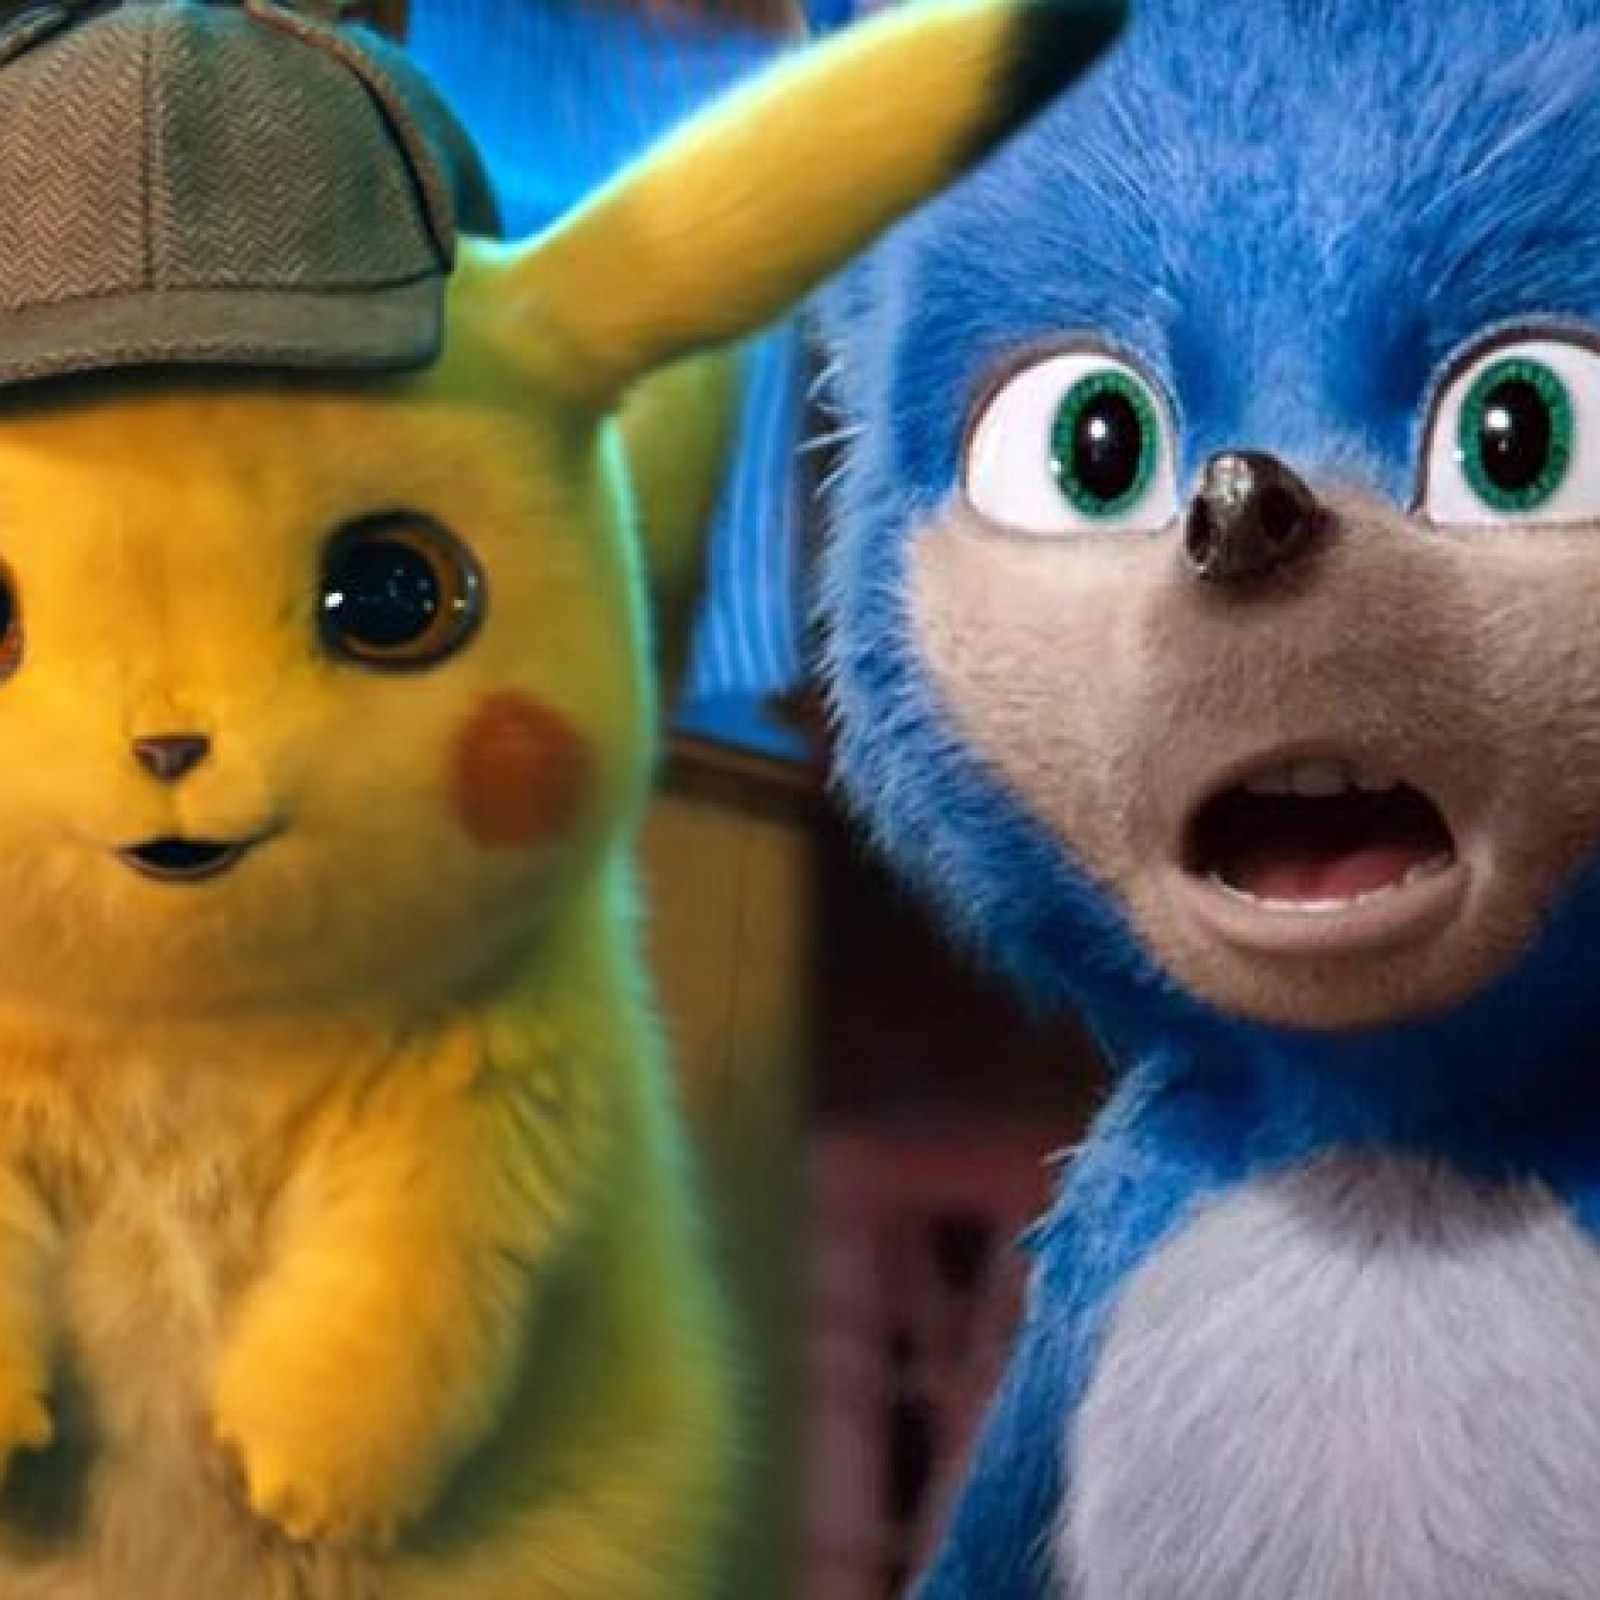 Detective Pikachu Cinematographer Explains Why His Movie Looks